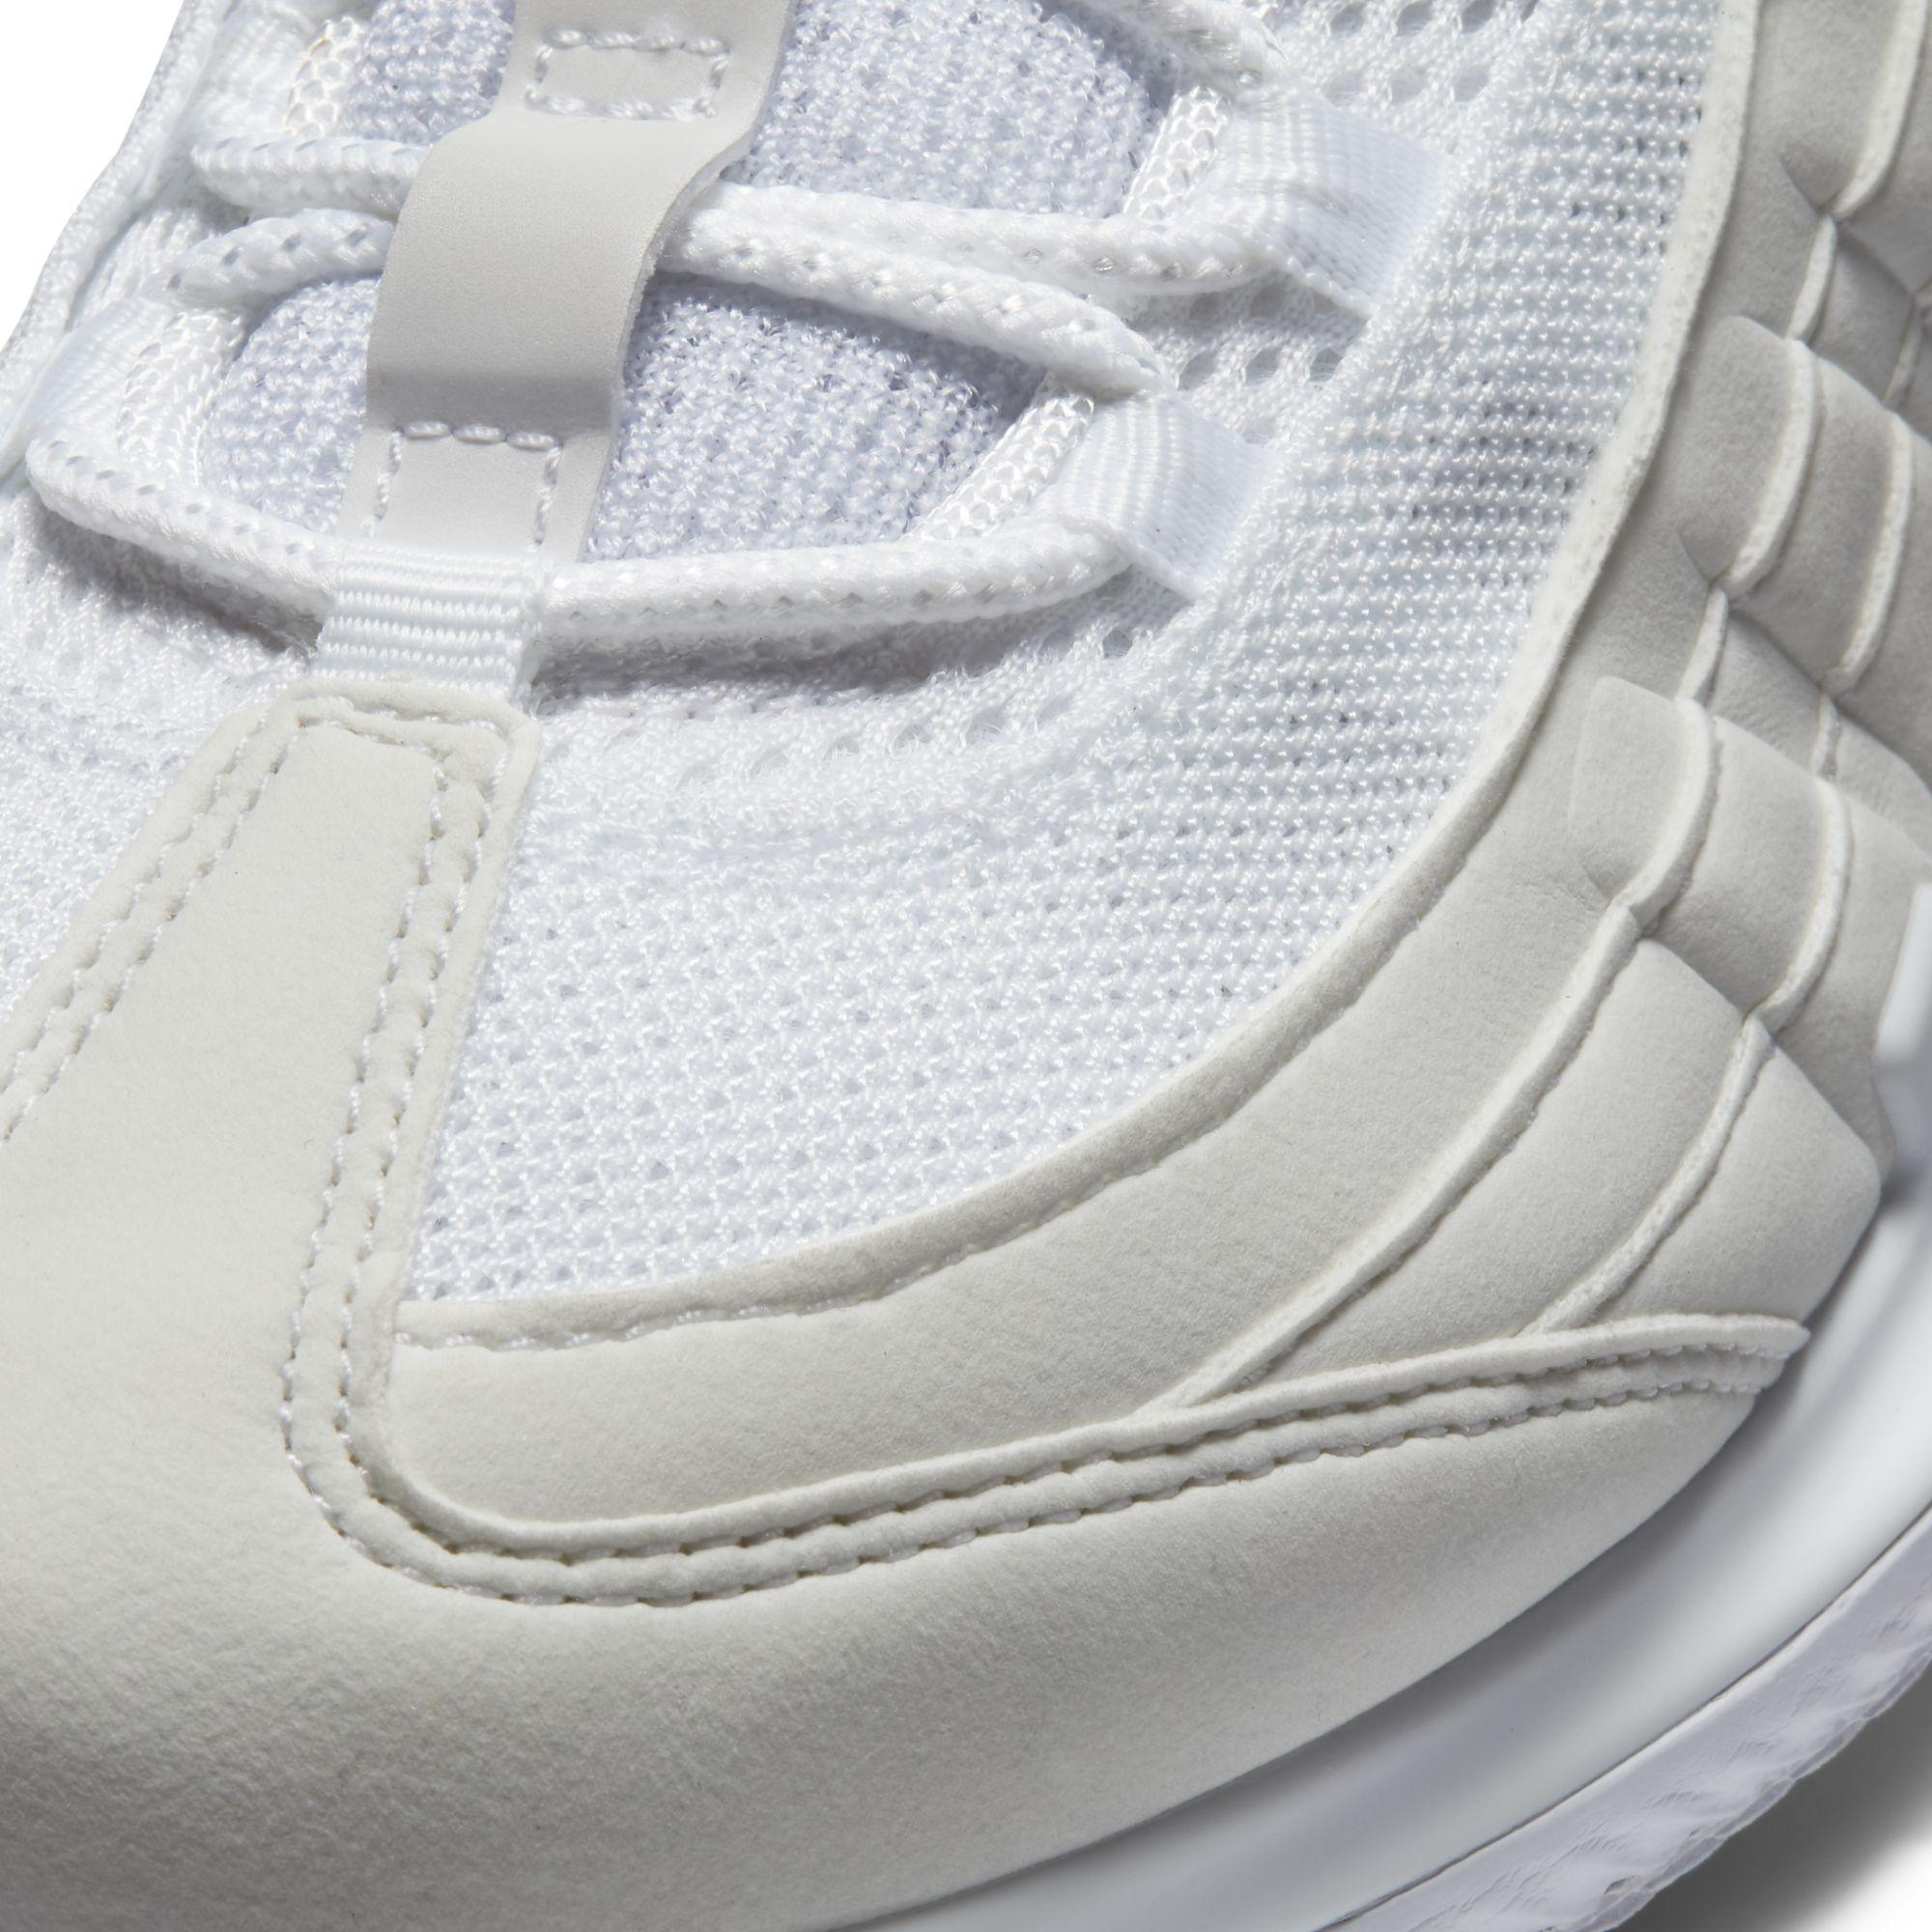 Nike Synthetic Court Zoom Vapor X Air Max 95 Tennis Shoe in White ...